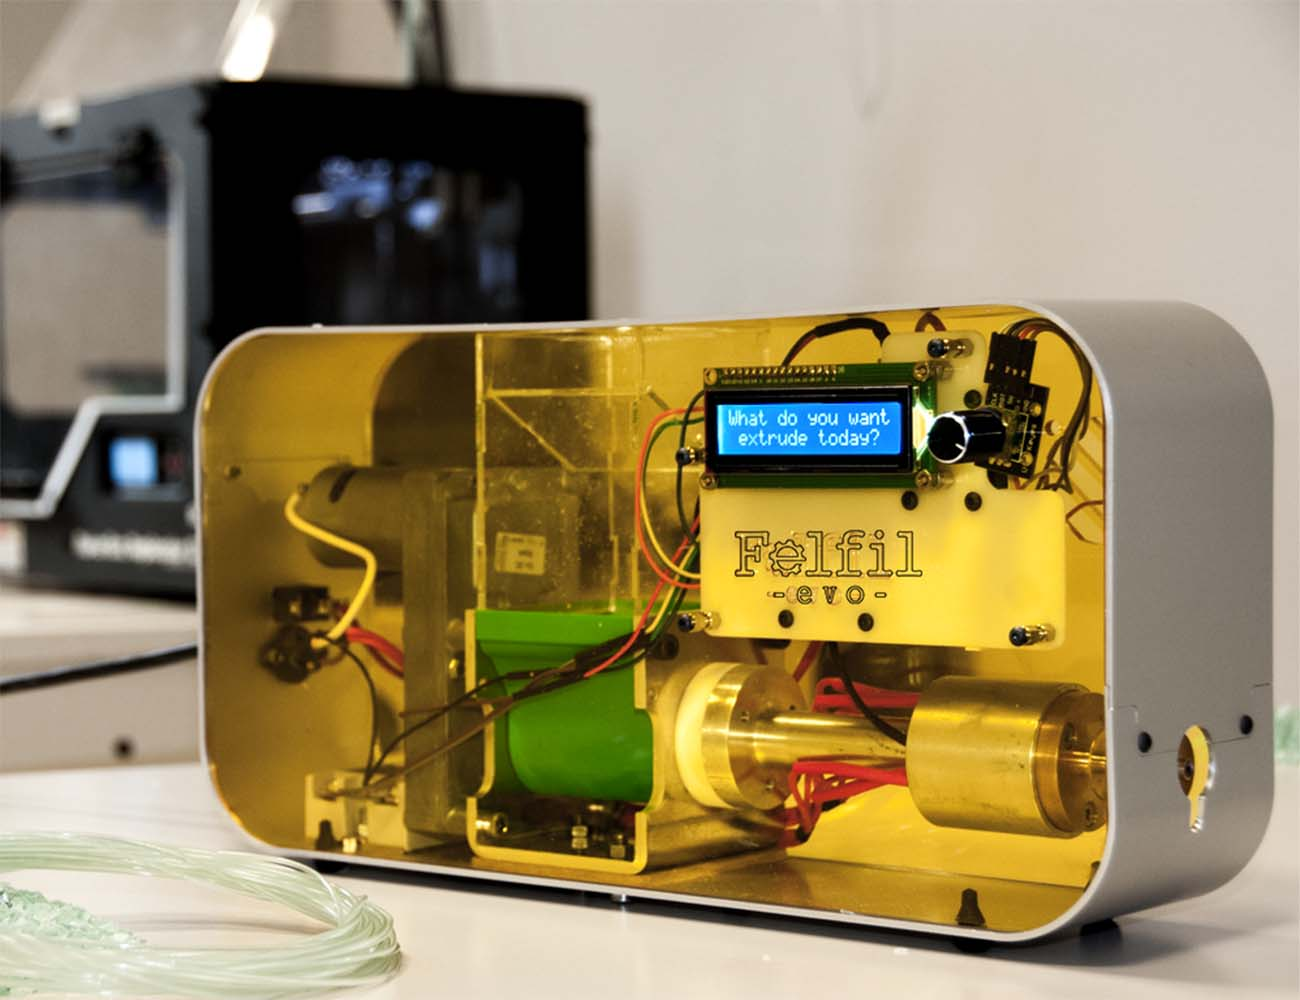 Felfil Evo – The 3D Printer Filament Extruder